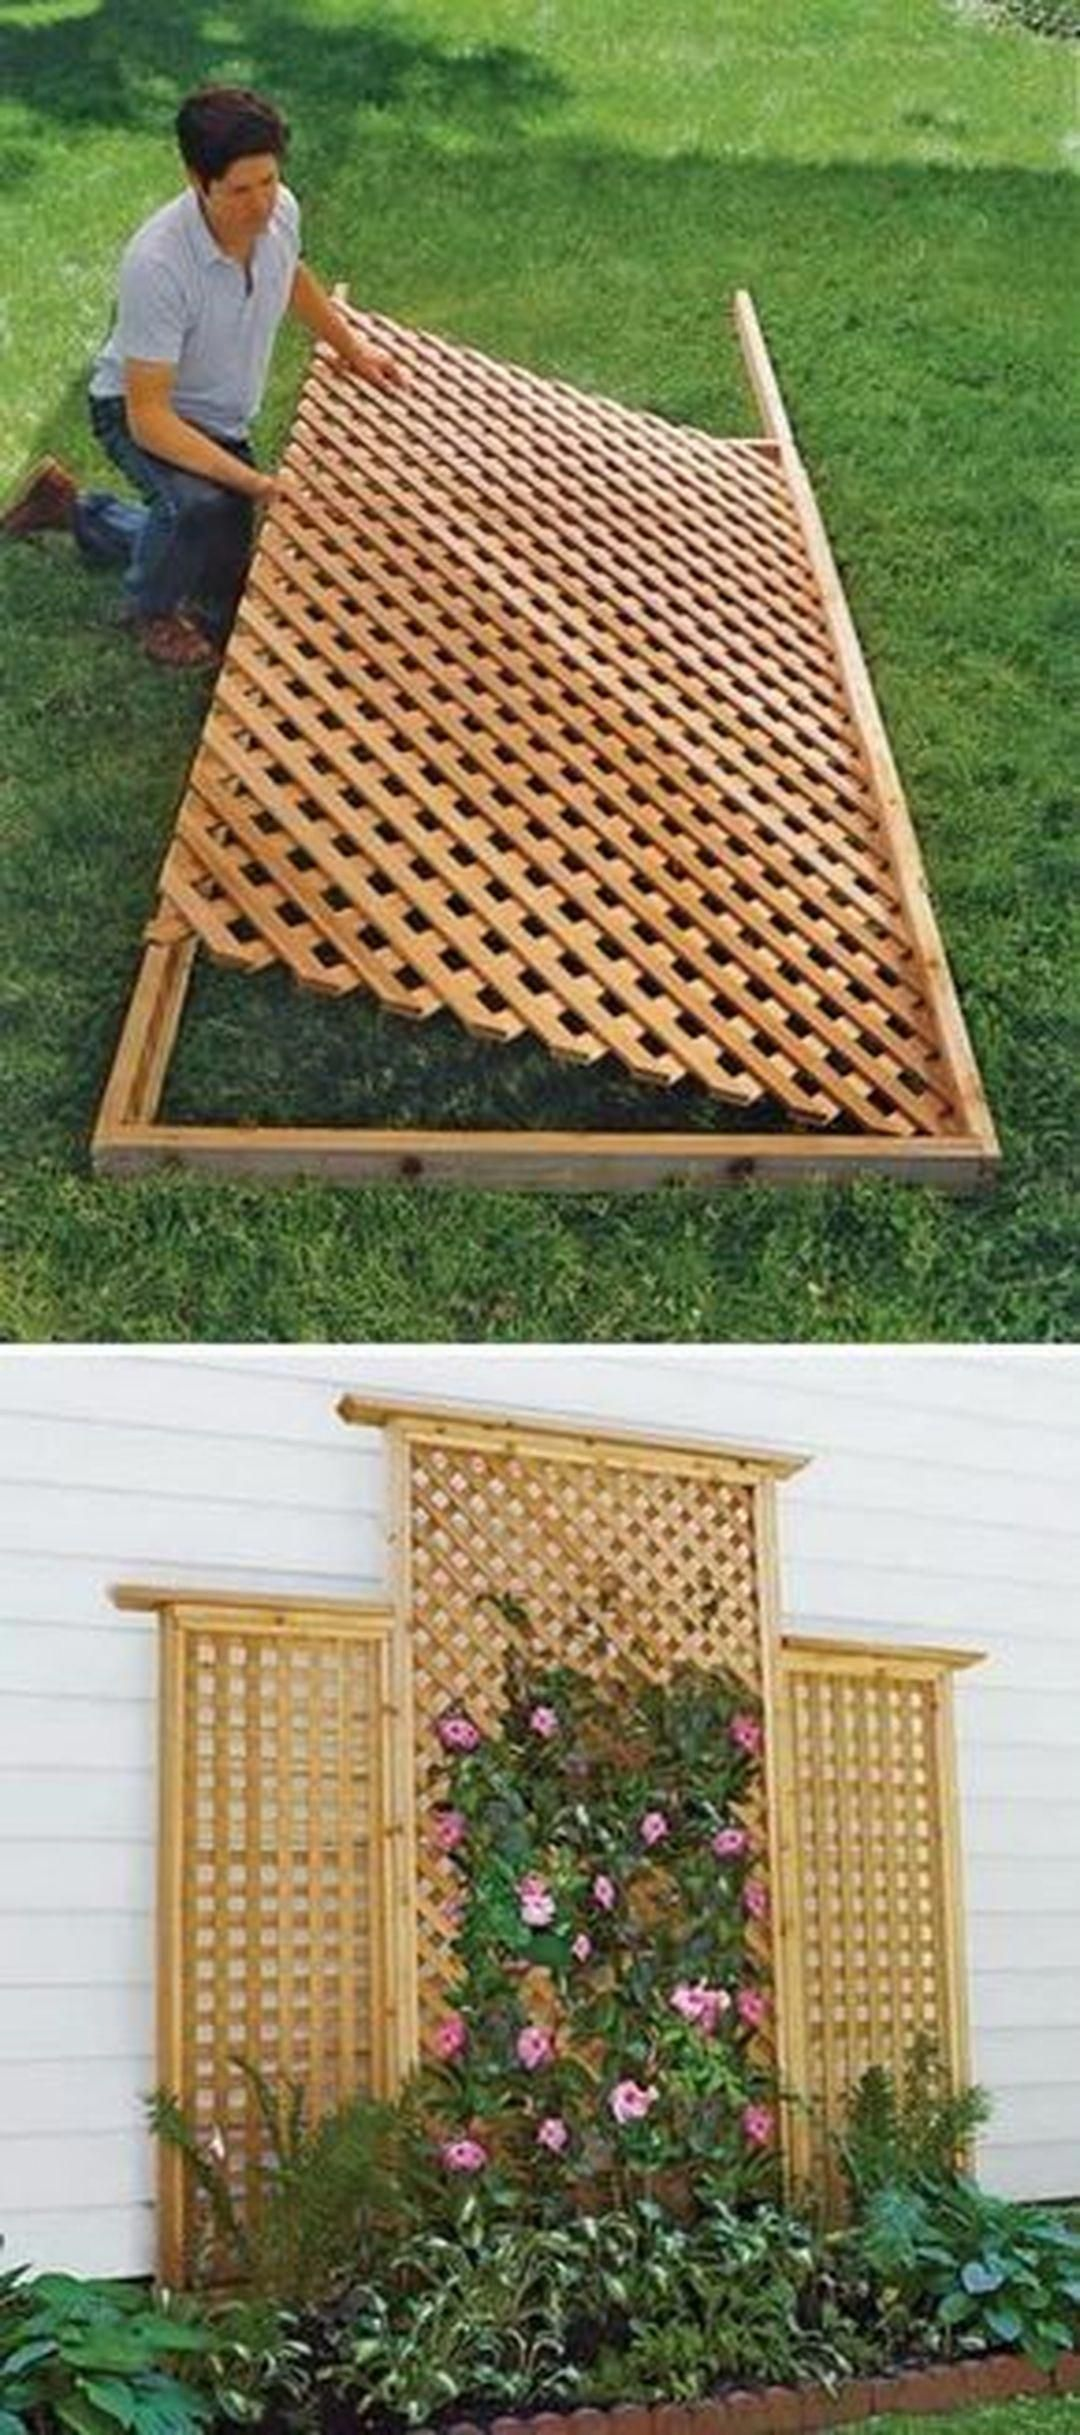 Landscaping landscaping to buy pinterest backyard garden and yard